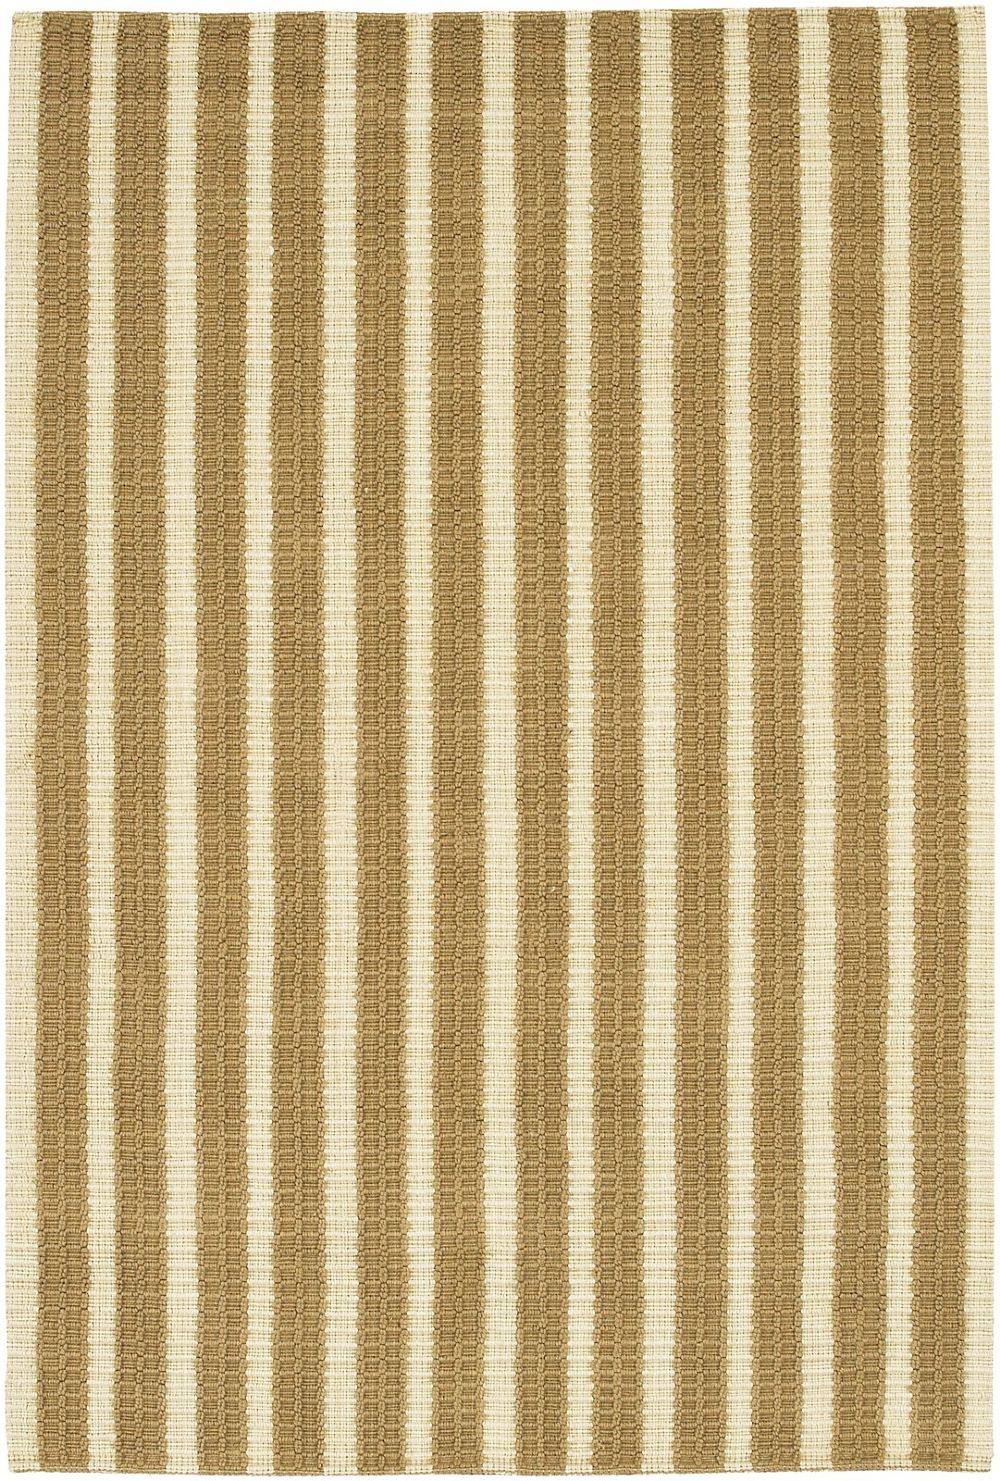 chandra art contemporary area rug collection